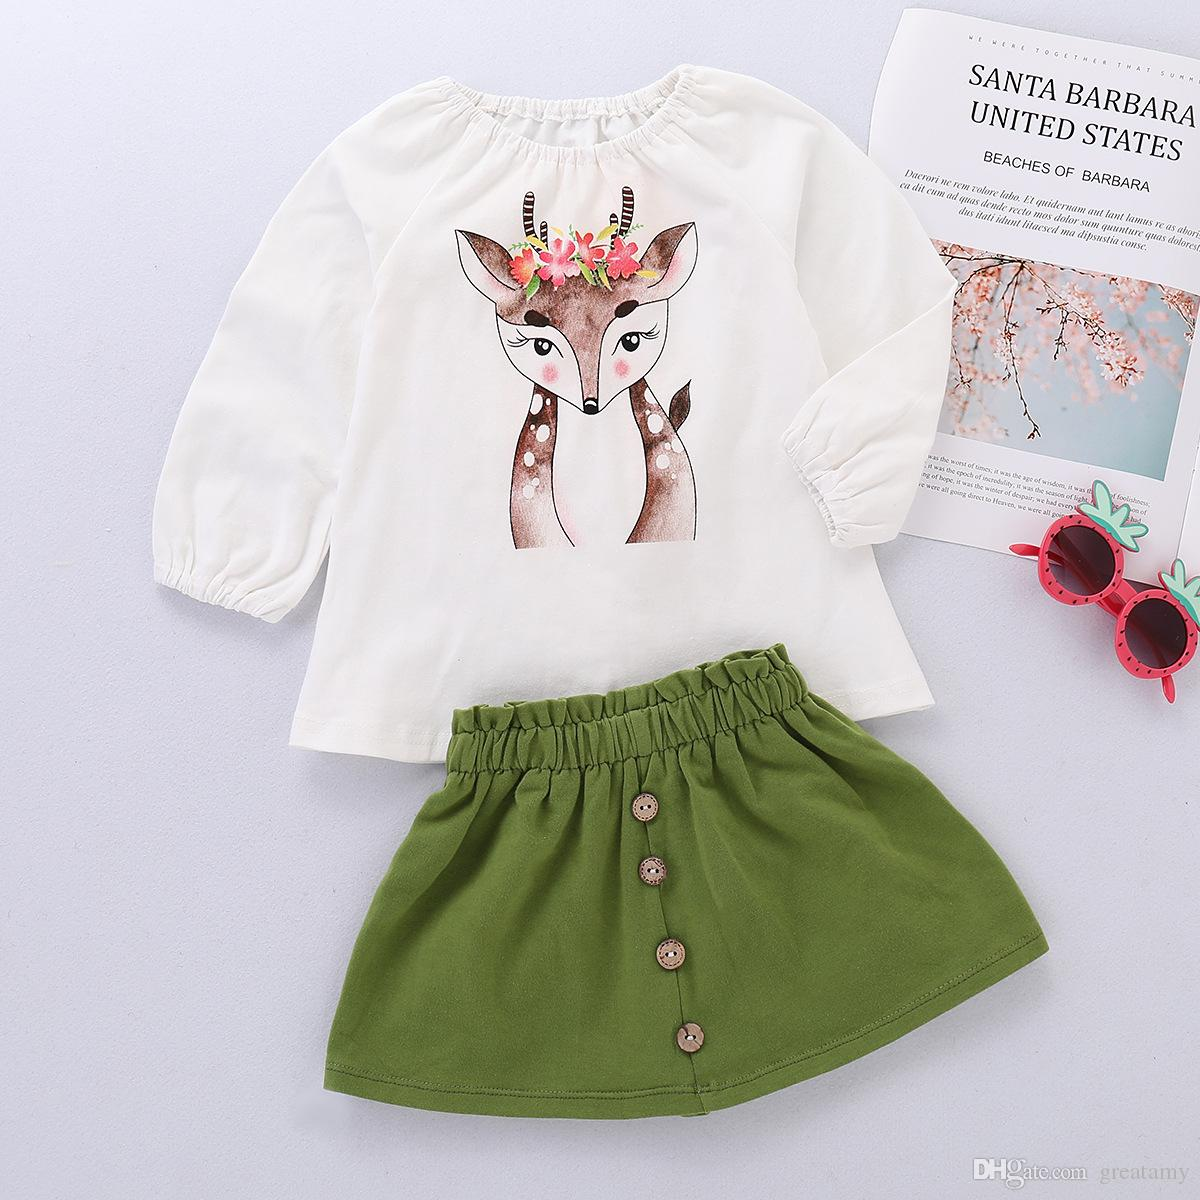 a70850529 Christmas Baby Girls Deer Cartoon Toddler Stylish and fashion design Print  Long Sleeve Tops + girls green Skirt Outfit Set 1-4T